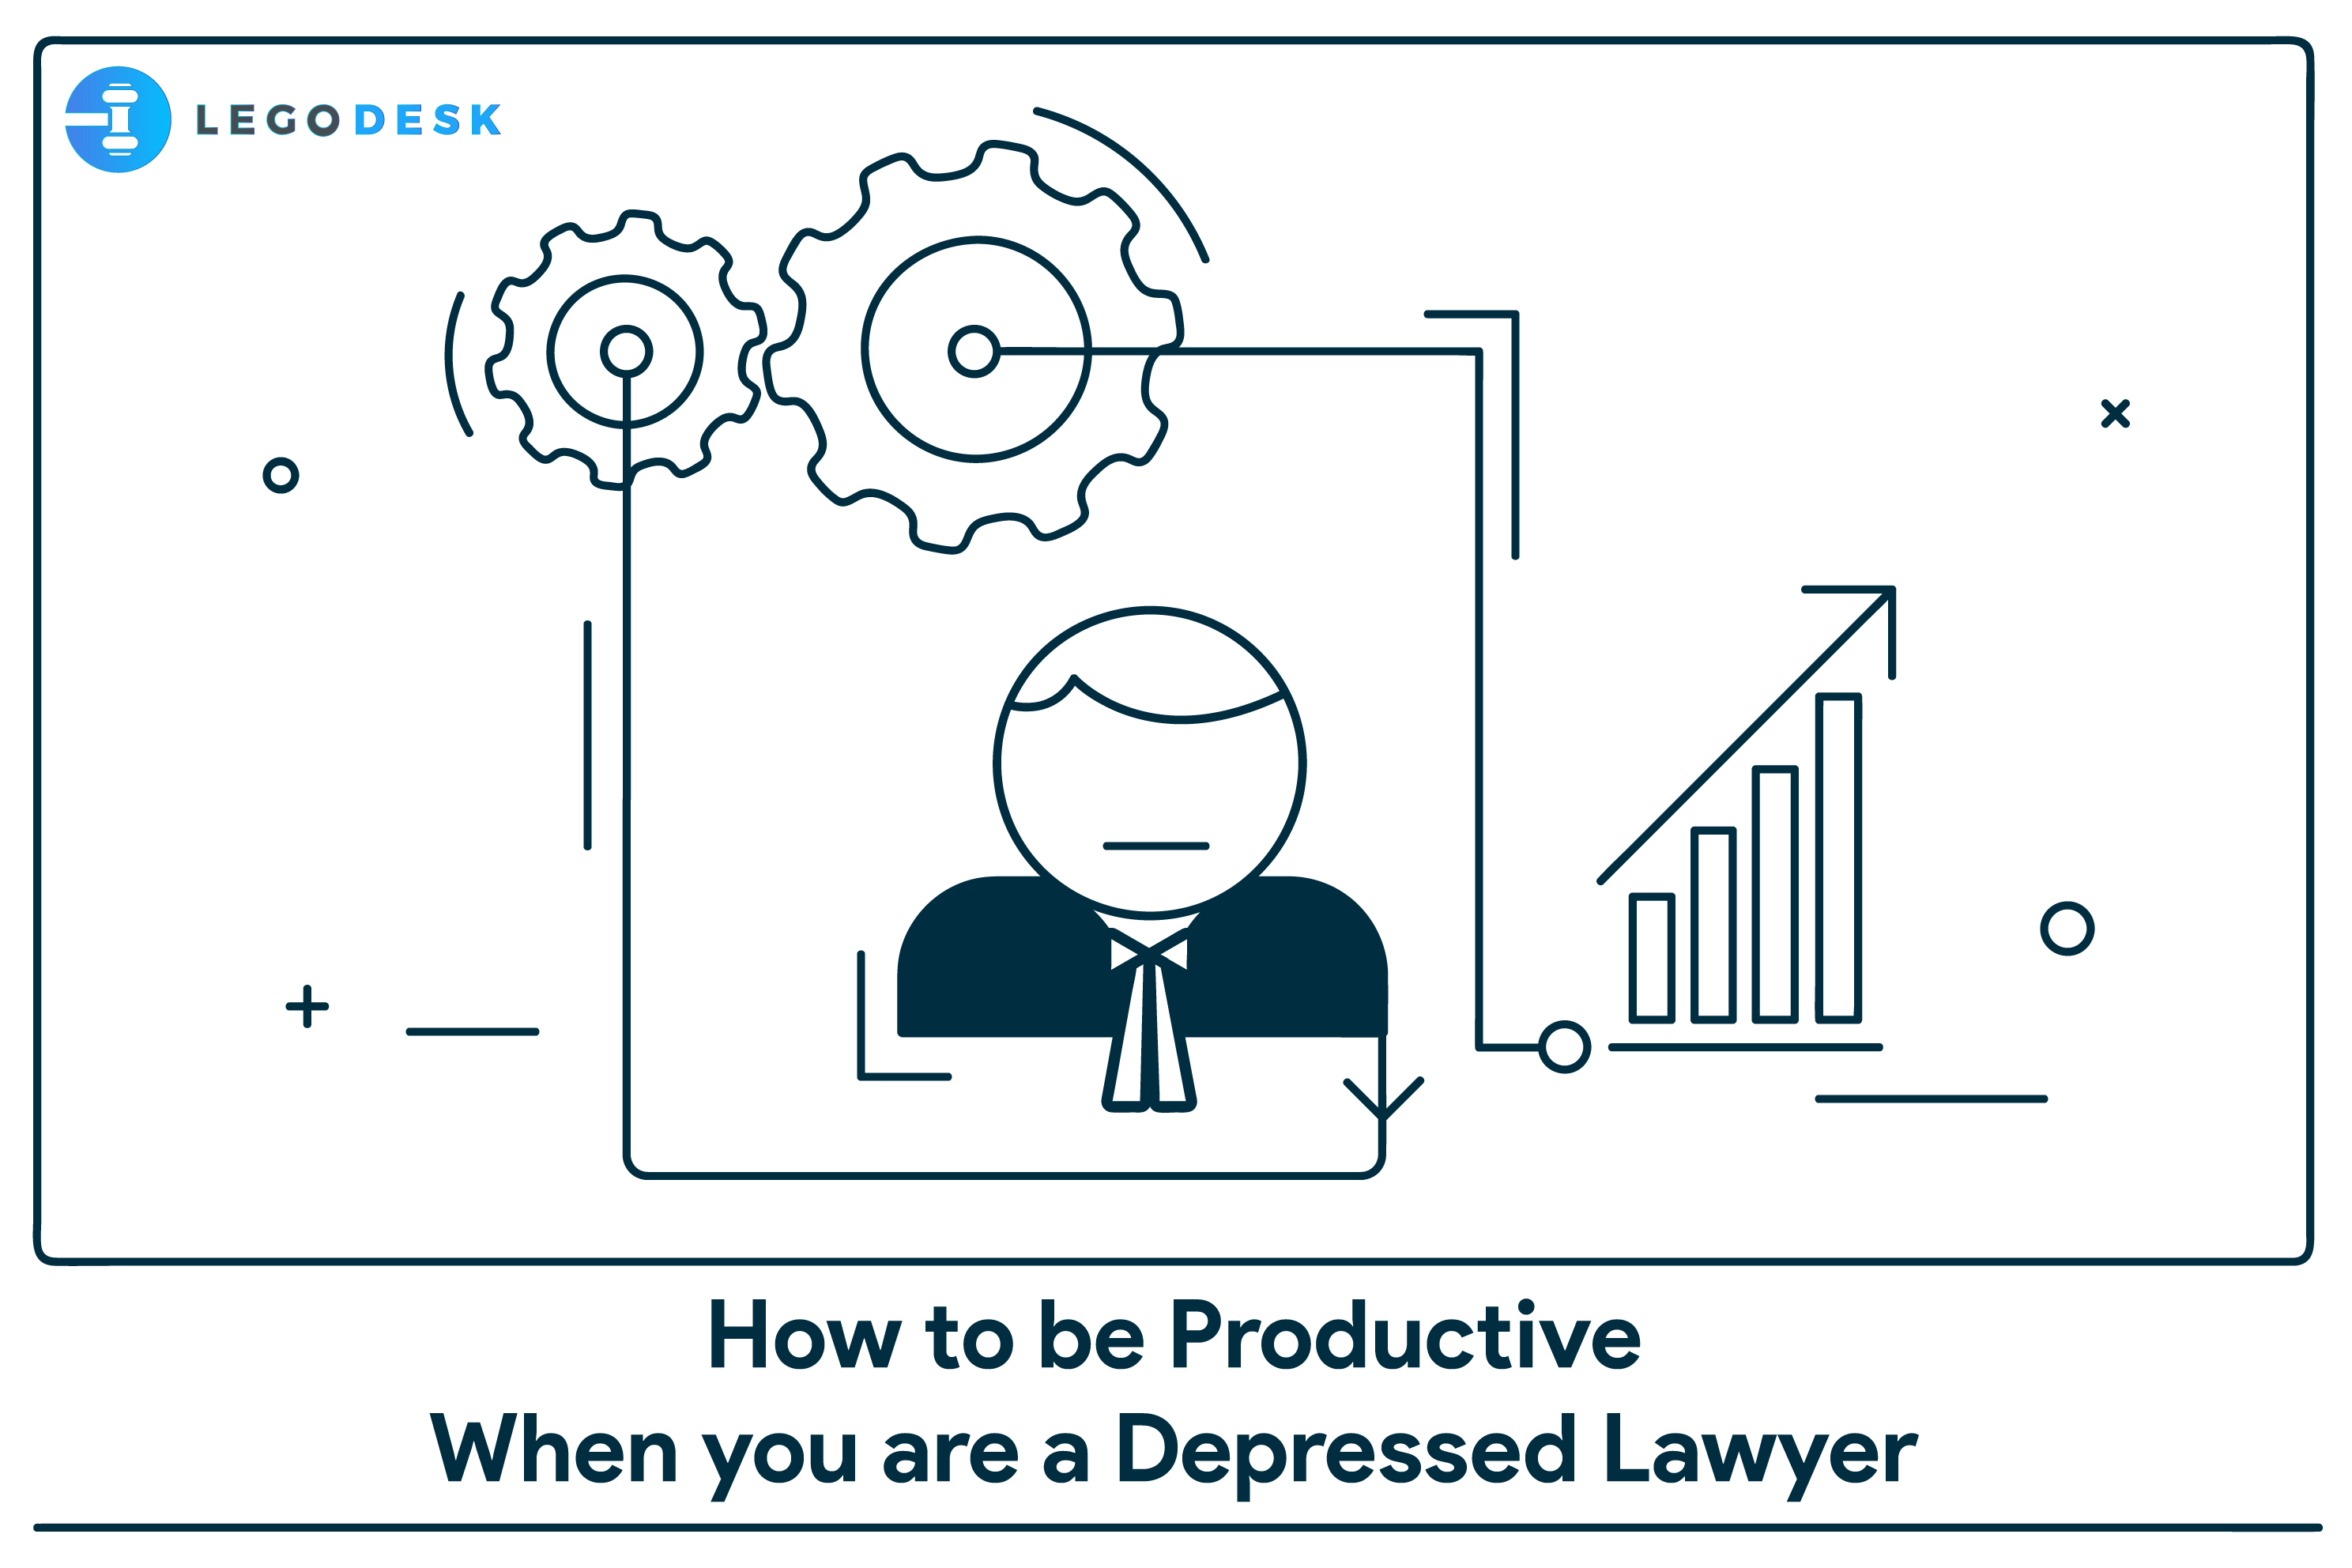 How to be Productive When You are a Depressed Lawyer?